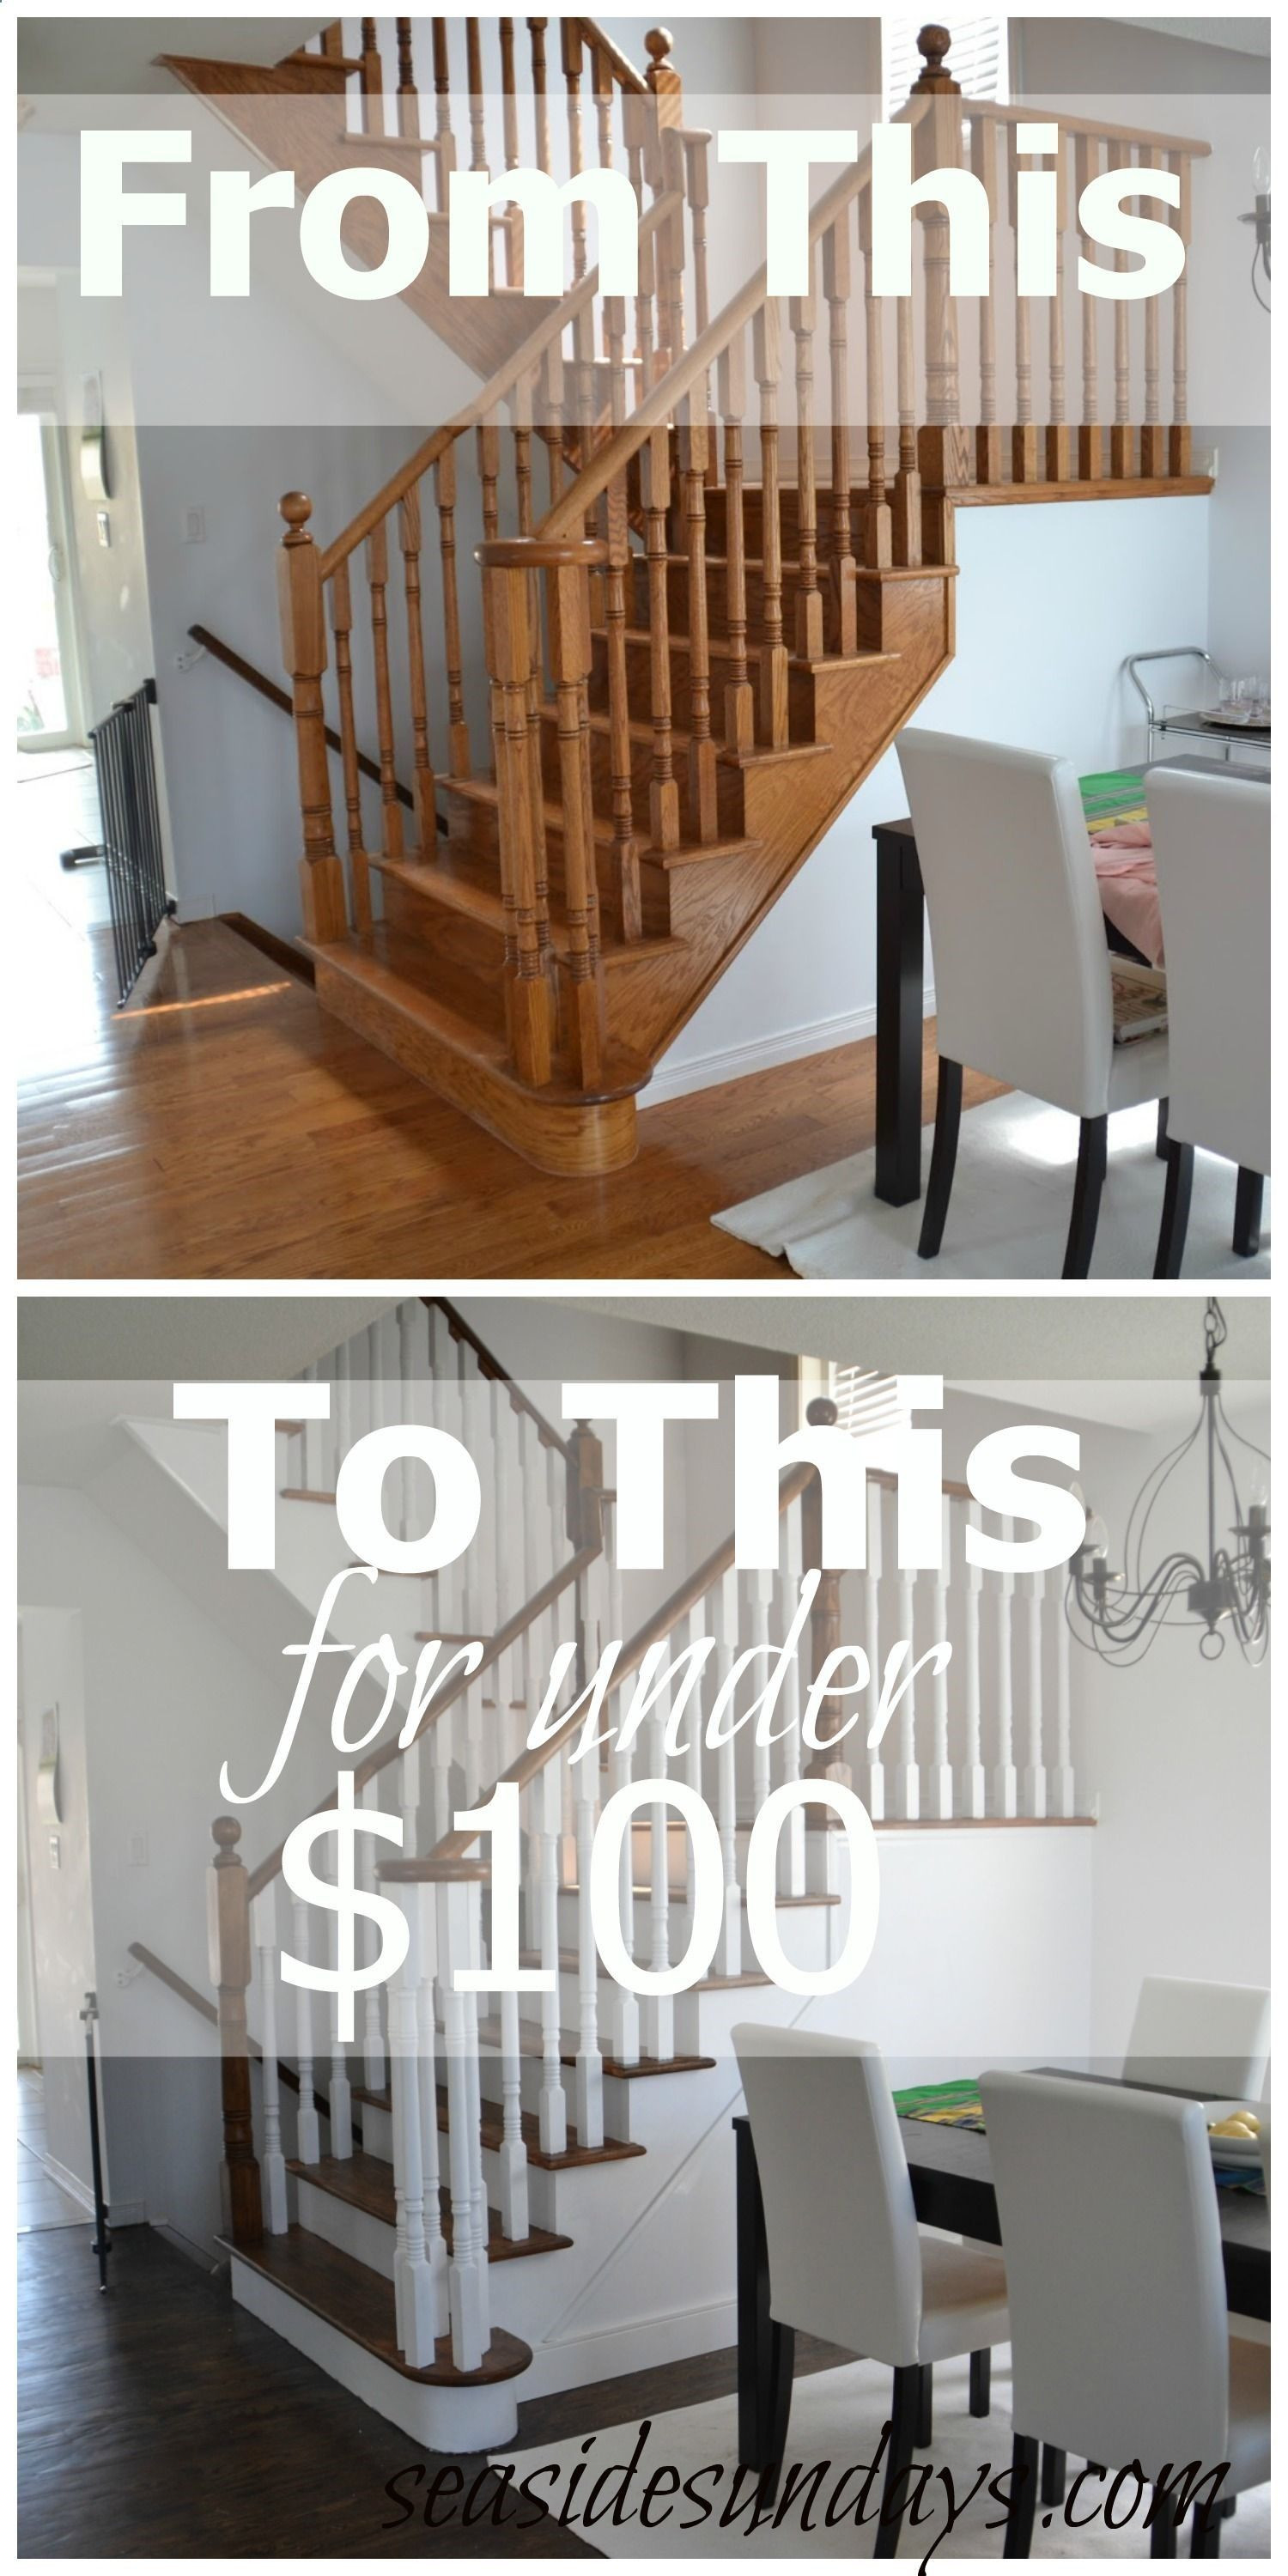 how much to refinish hardwood floors diy of wood profit woodworking how to refinish hardwood floors diy for wood profit woodworking how to refinish hardwood floors diy refinish and stain stairs